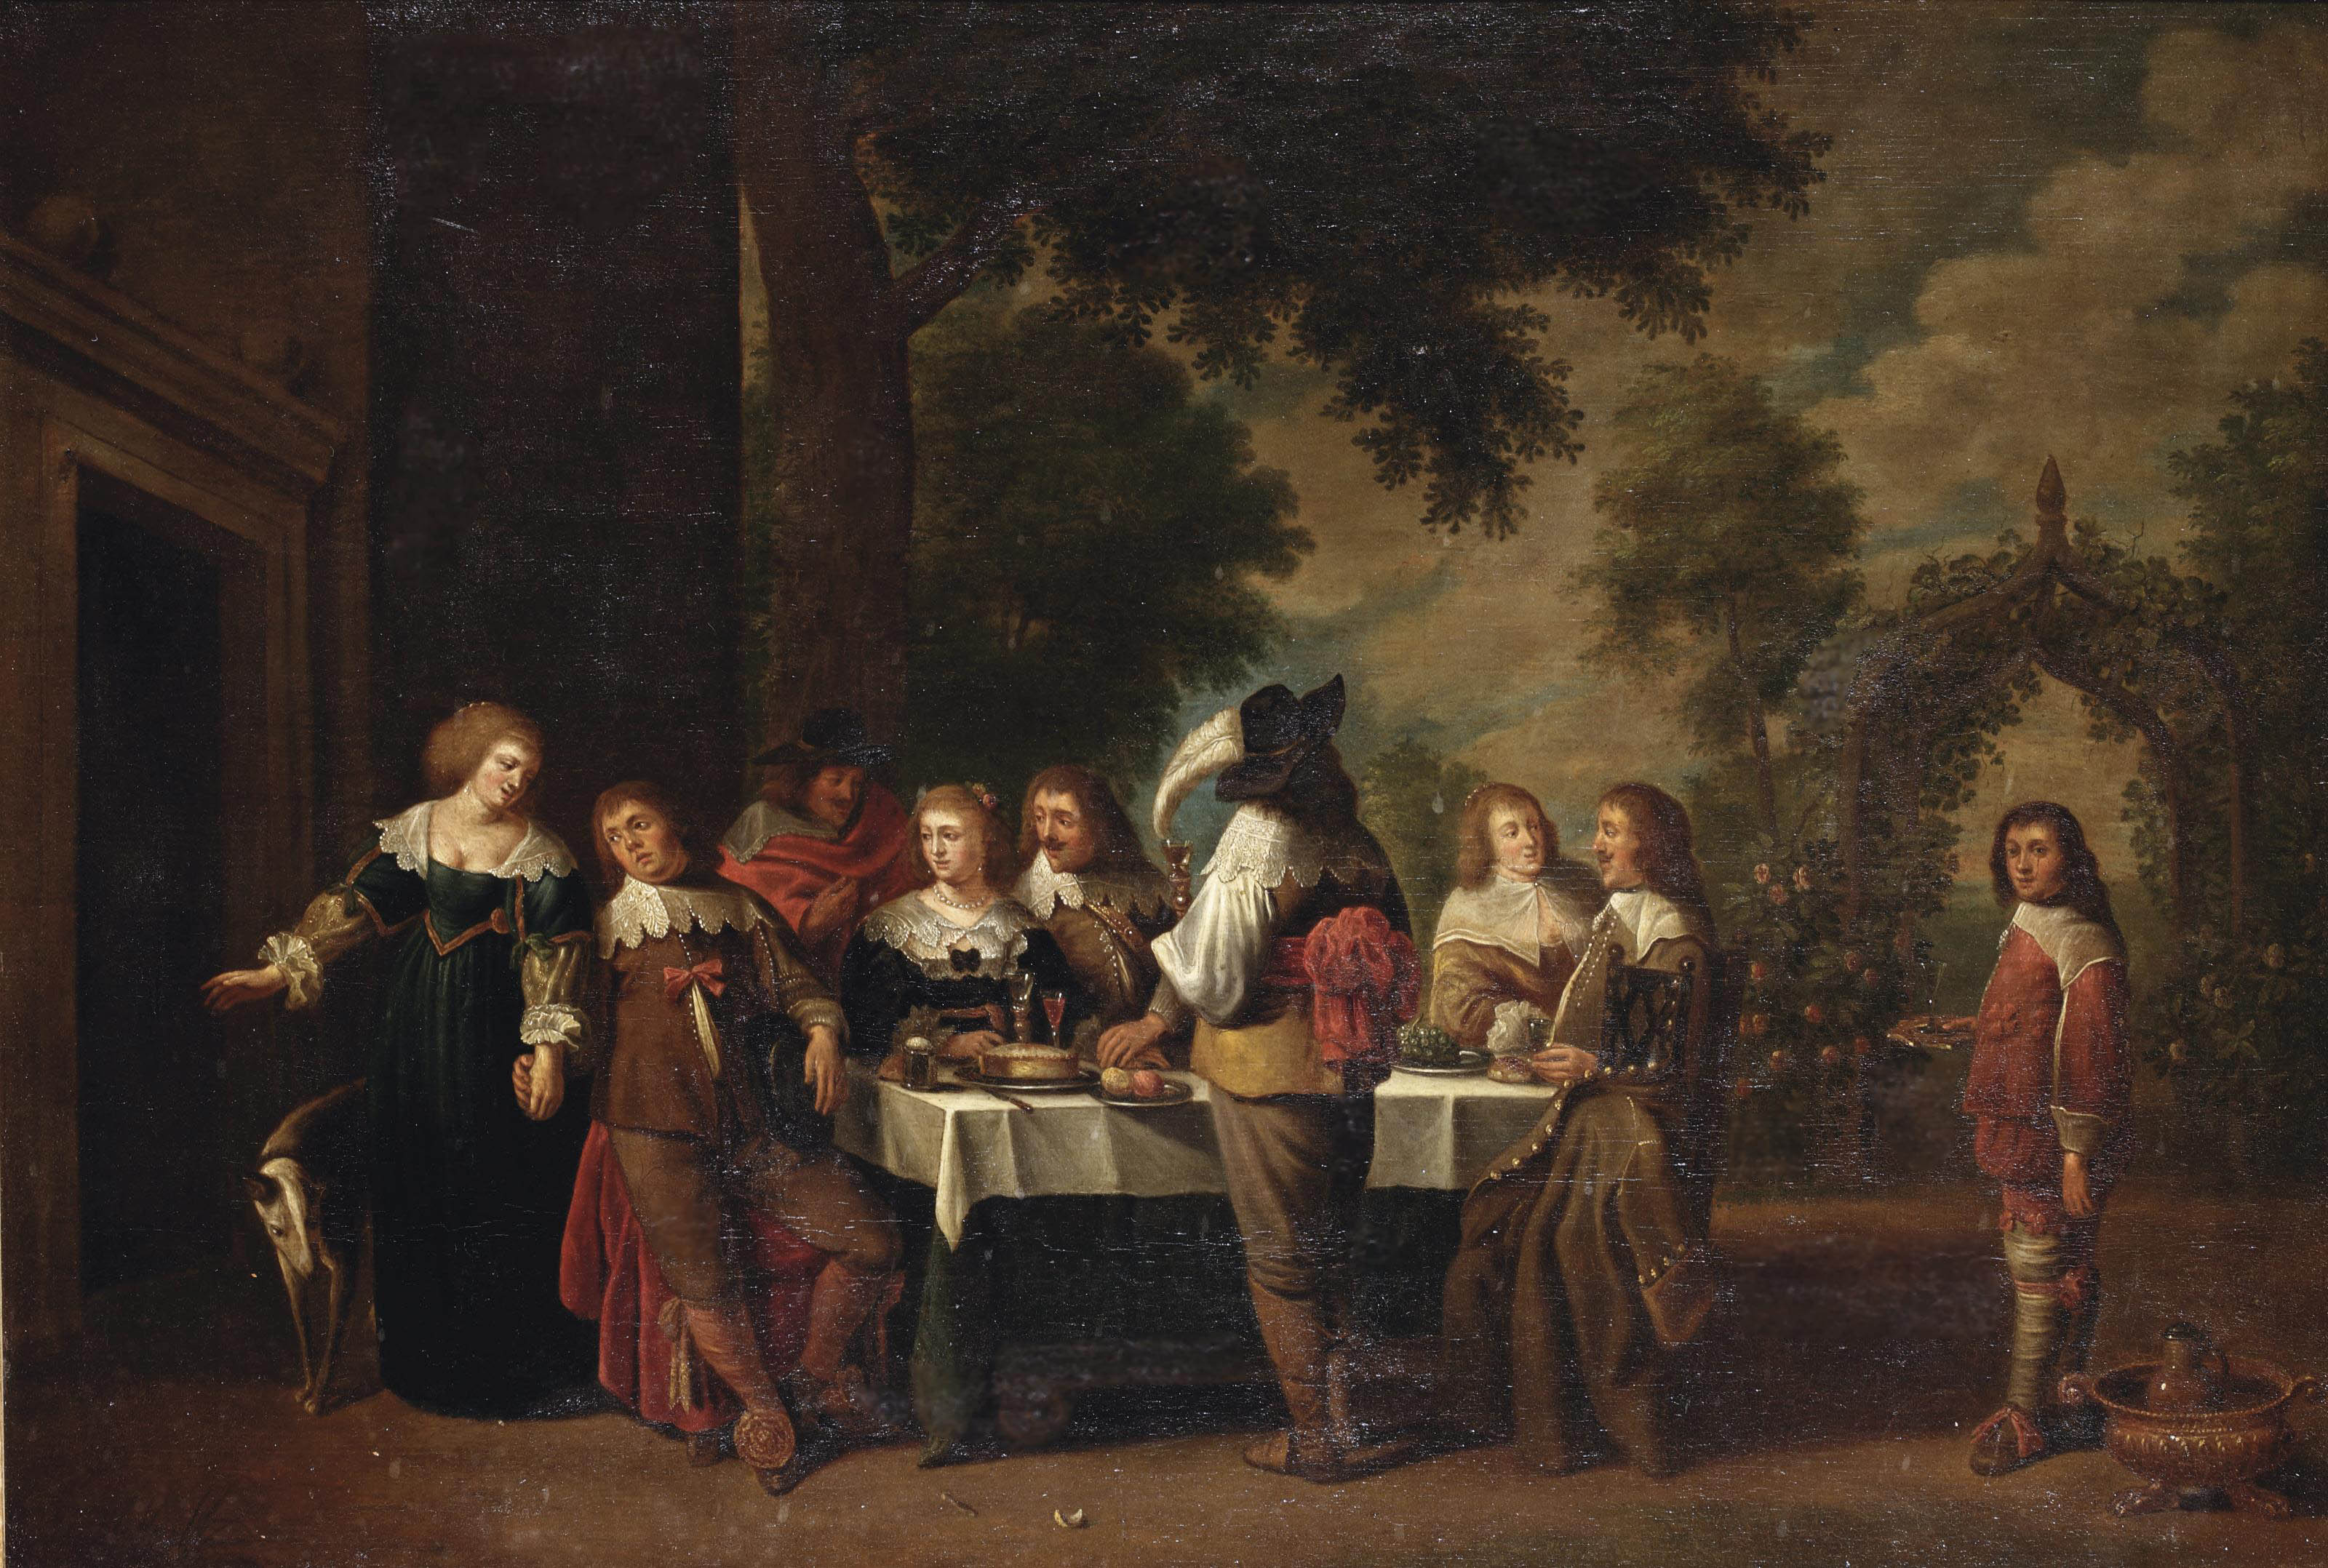 An elegant company dining and making merry in a garden